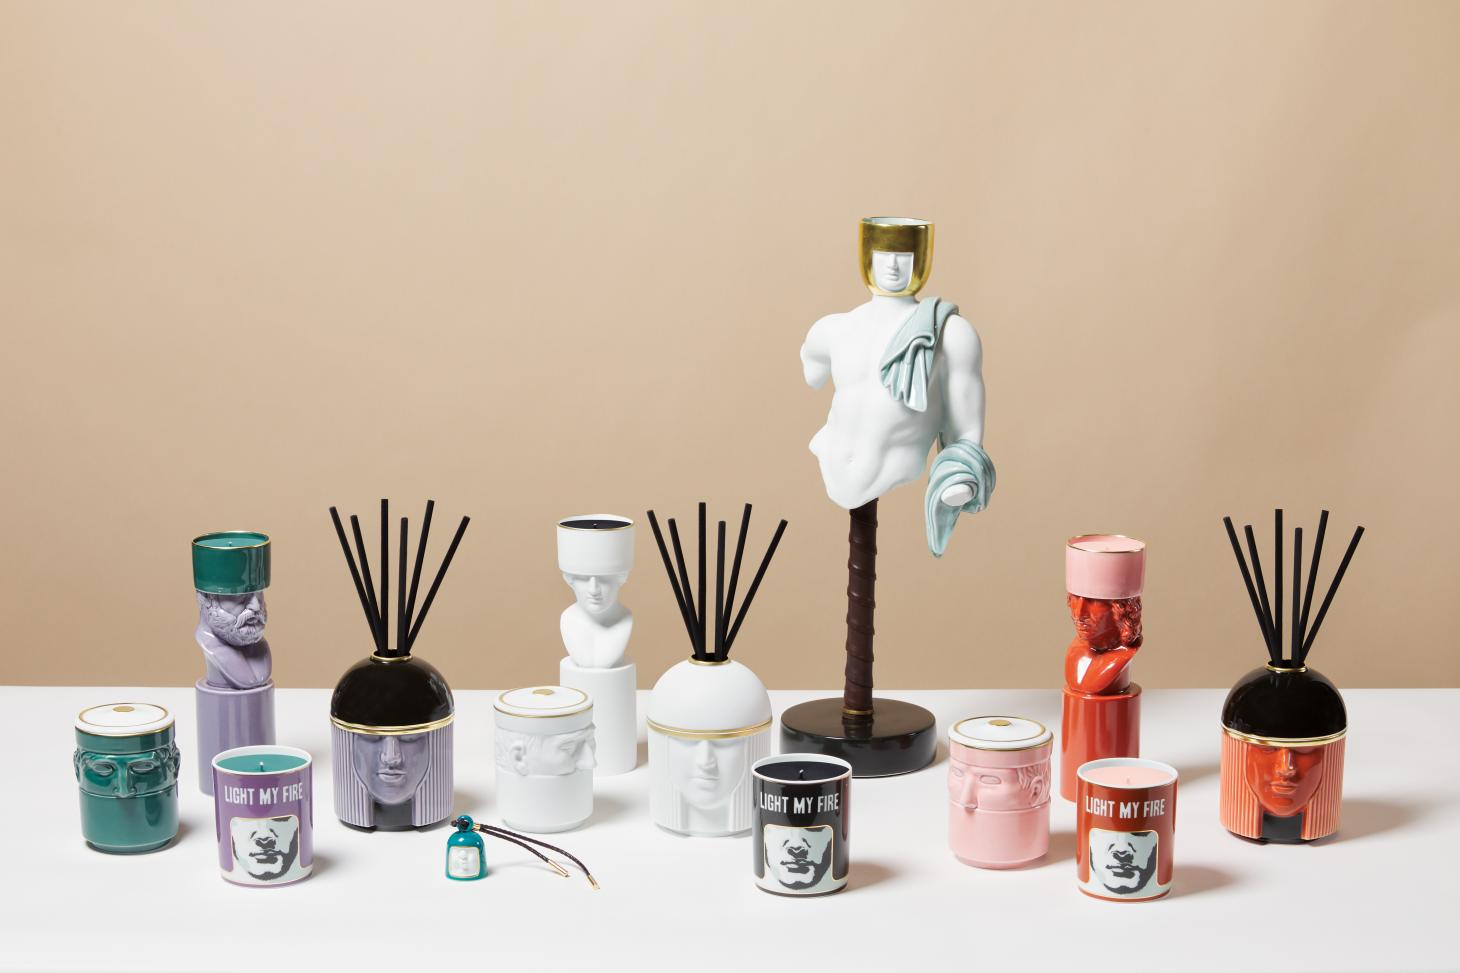 Ginori 1735 home fragrance collection inspired by Catherine de' Medici and designed by Luca Nichetto